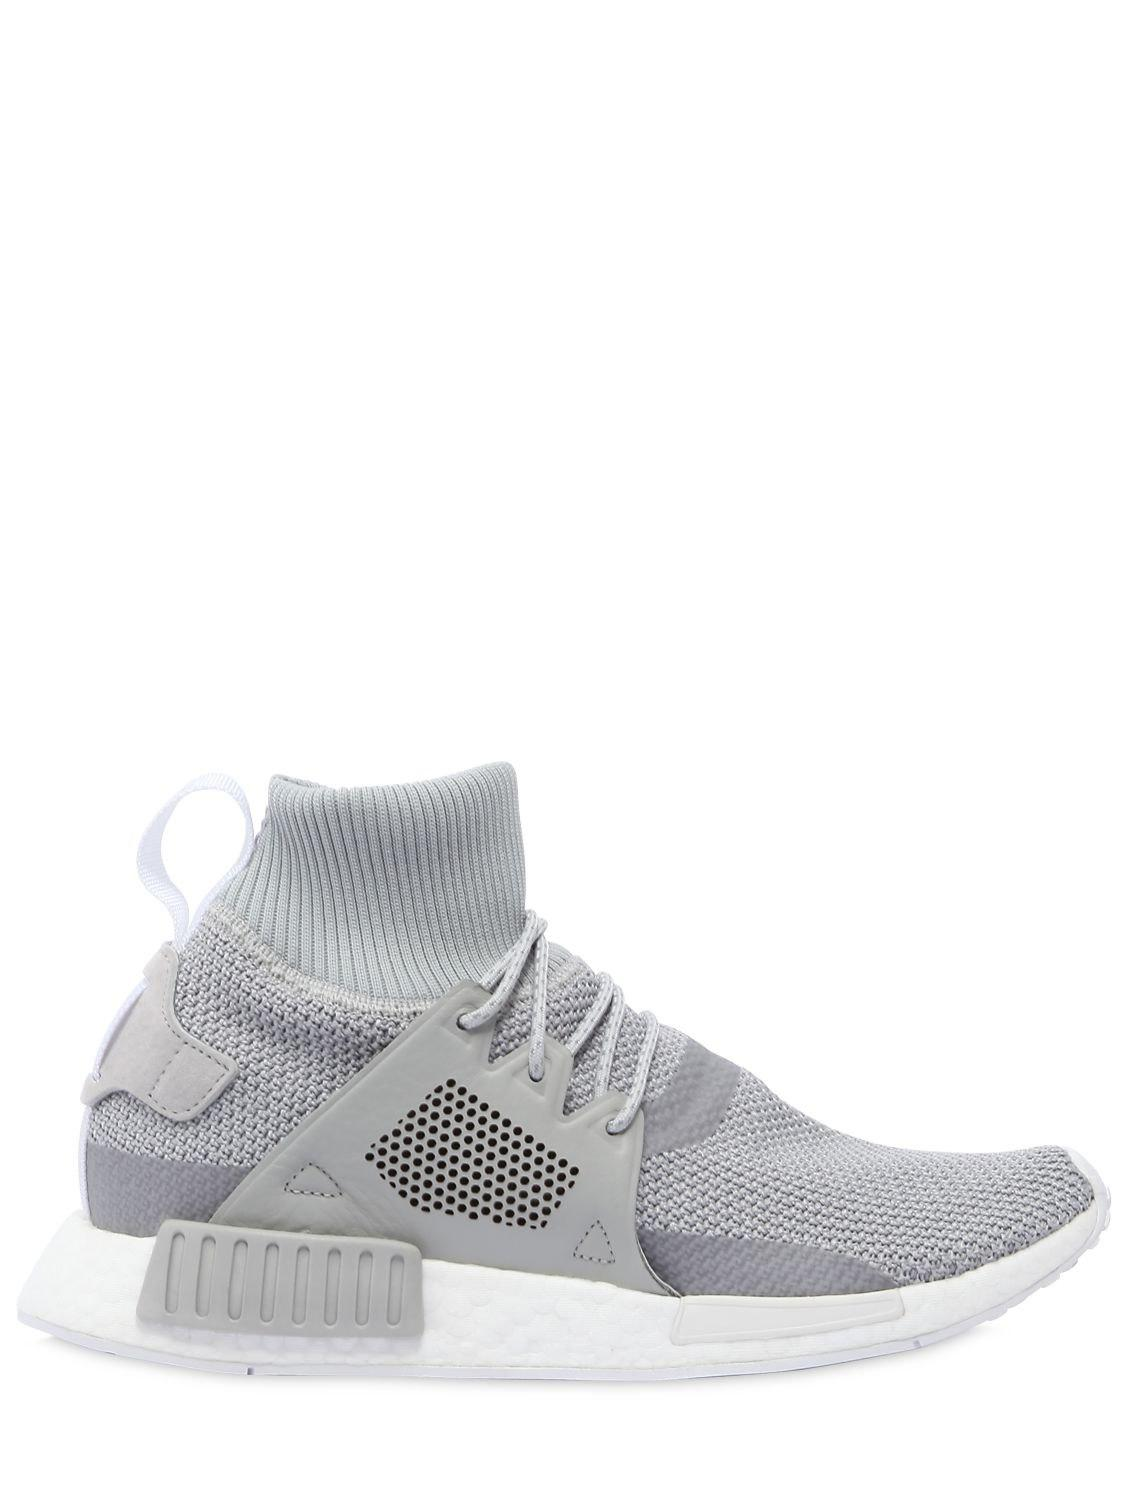 f8d5d0649f2a0a adidas Originals Nmd Xr1 Adventure Sneakers in Gray for Men - Lyst